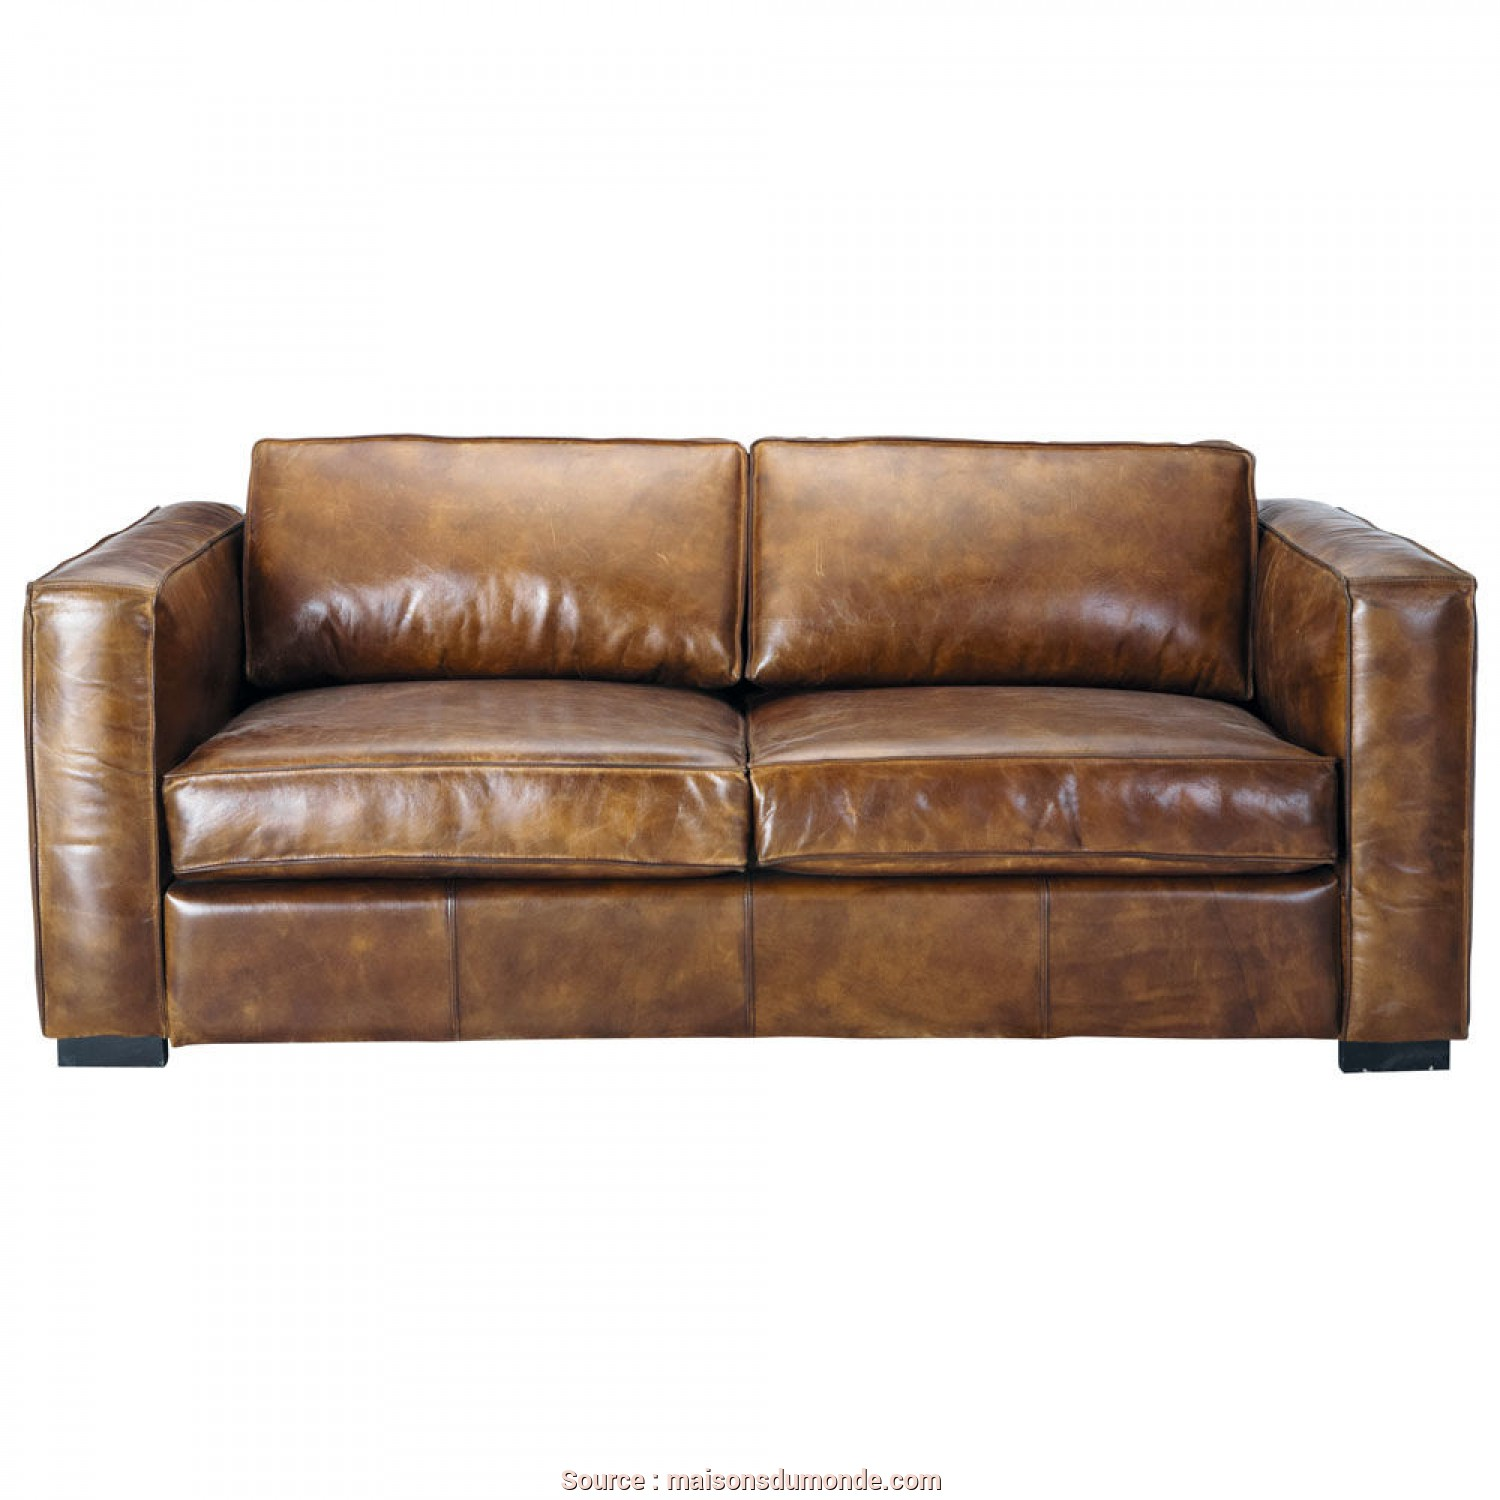 Divano, West Maison Du Monde, Superiore 3 Seater Distressed Leather Sofa, In Brown Berlin, Maisons Du Monde